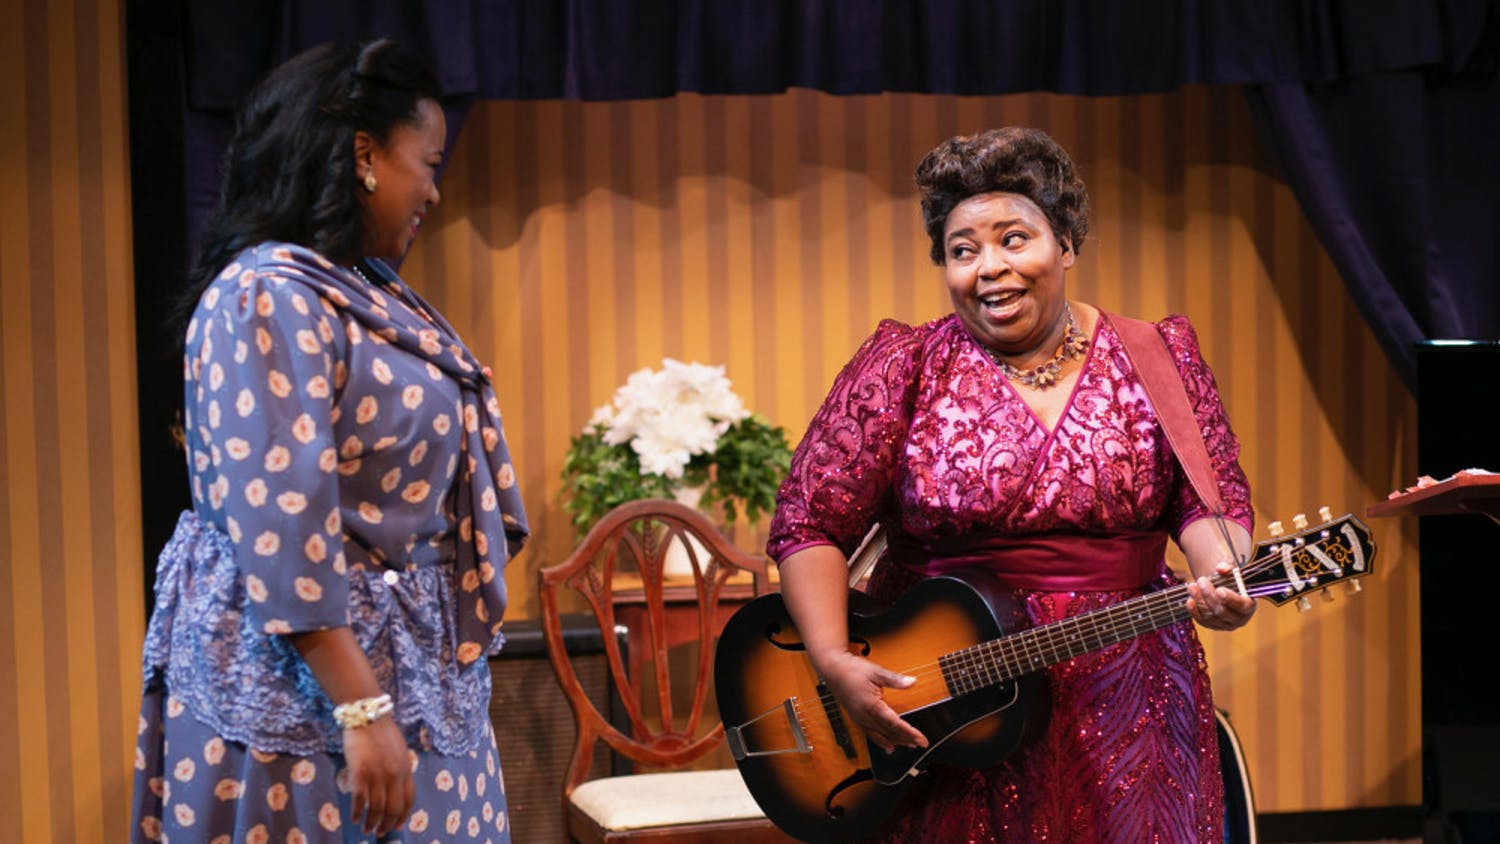 """Hillary Scales-Lewis and Illeana Kirven in """"Marie and Rosetta."""" Guitar player and gospel singer Sister Rosetta Tharpe is recognized today as a pioneer of rock 'n' roll."""